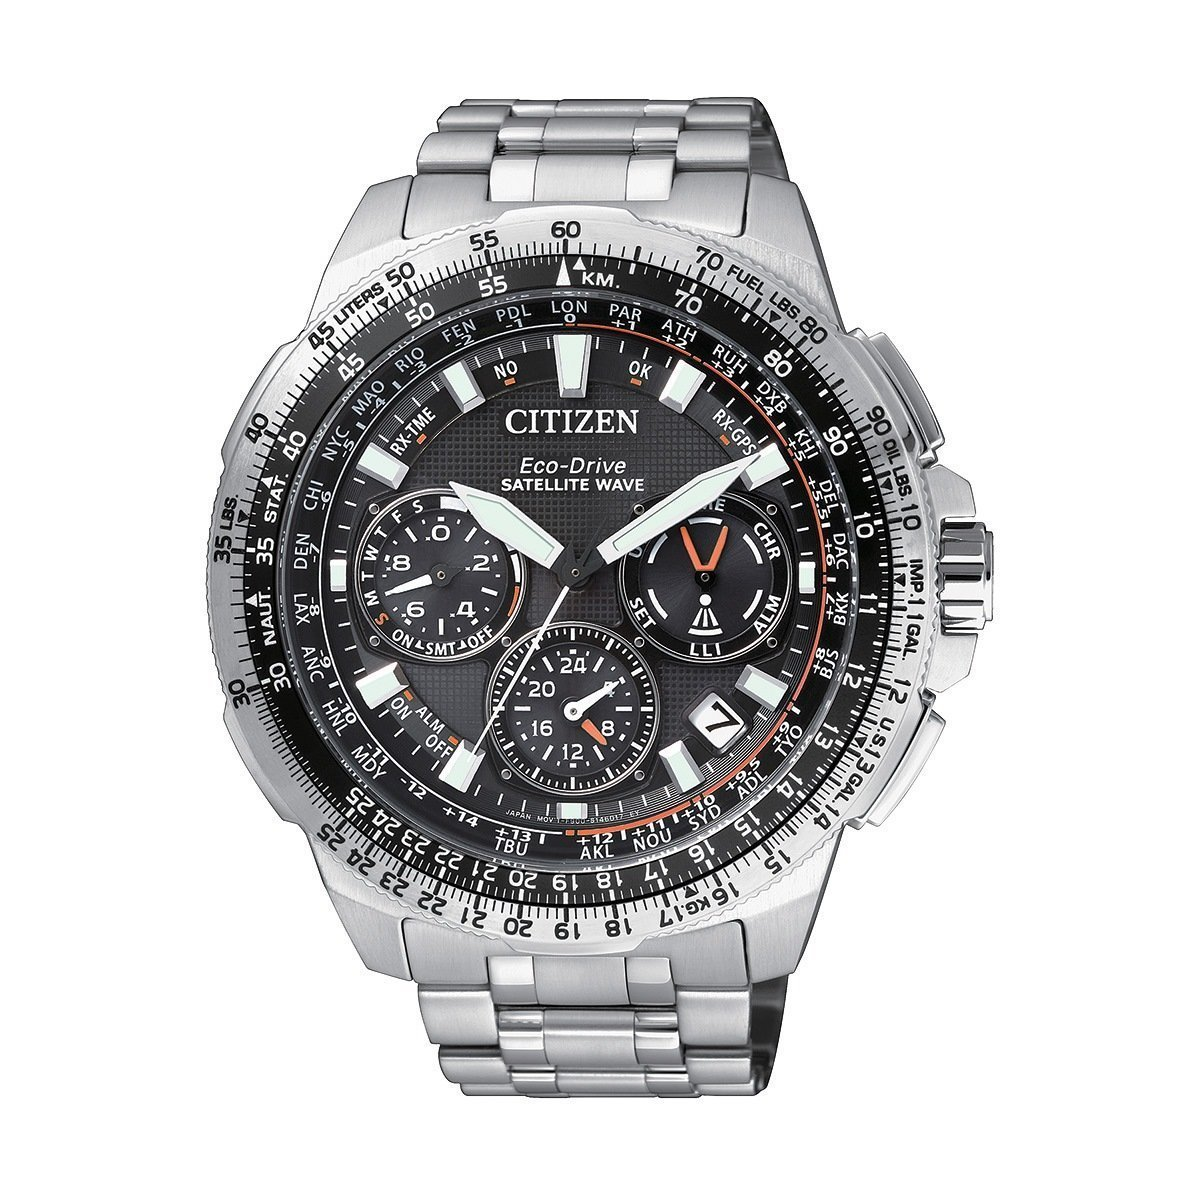 Montre Citizen Satellite Wave CC9020-54E